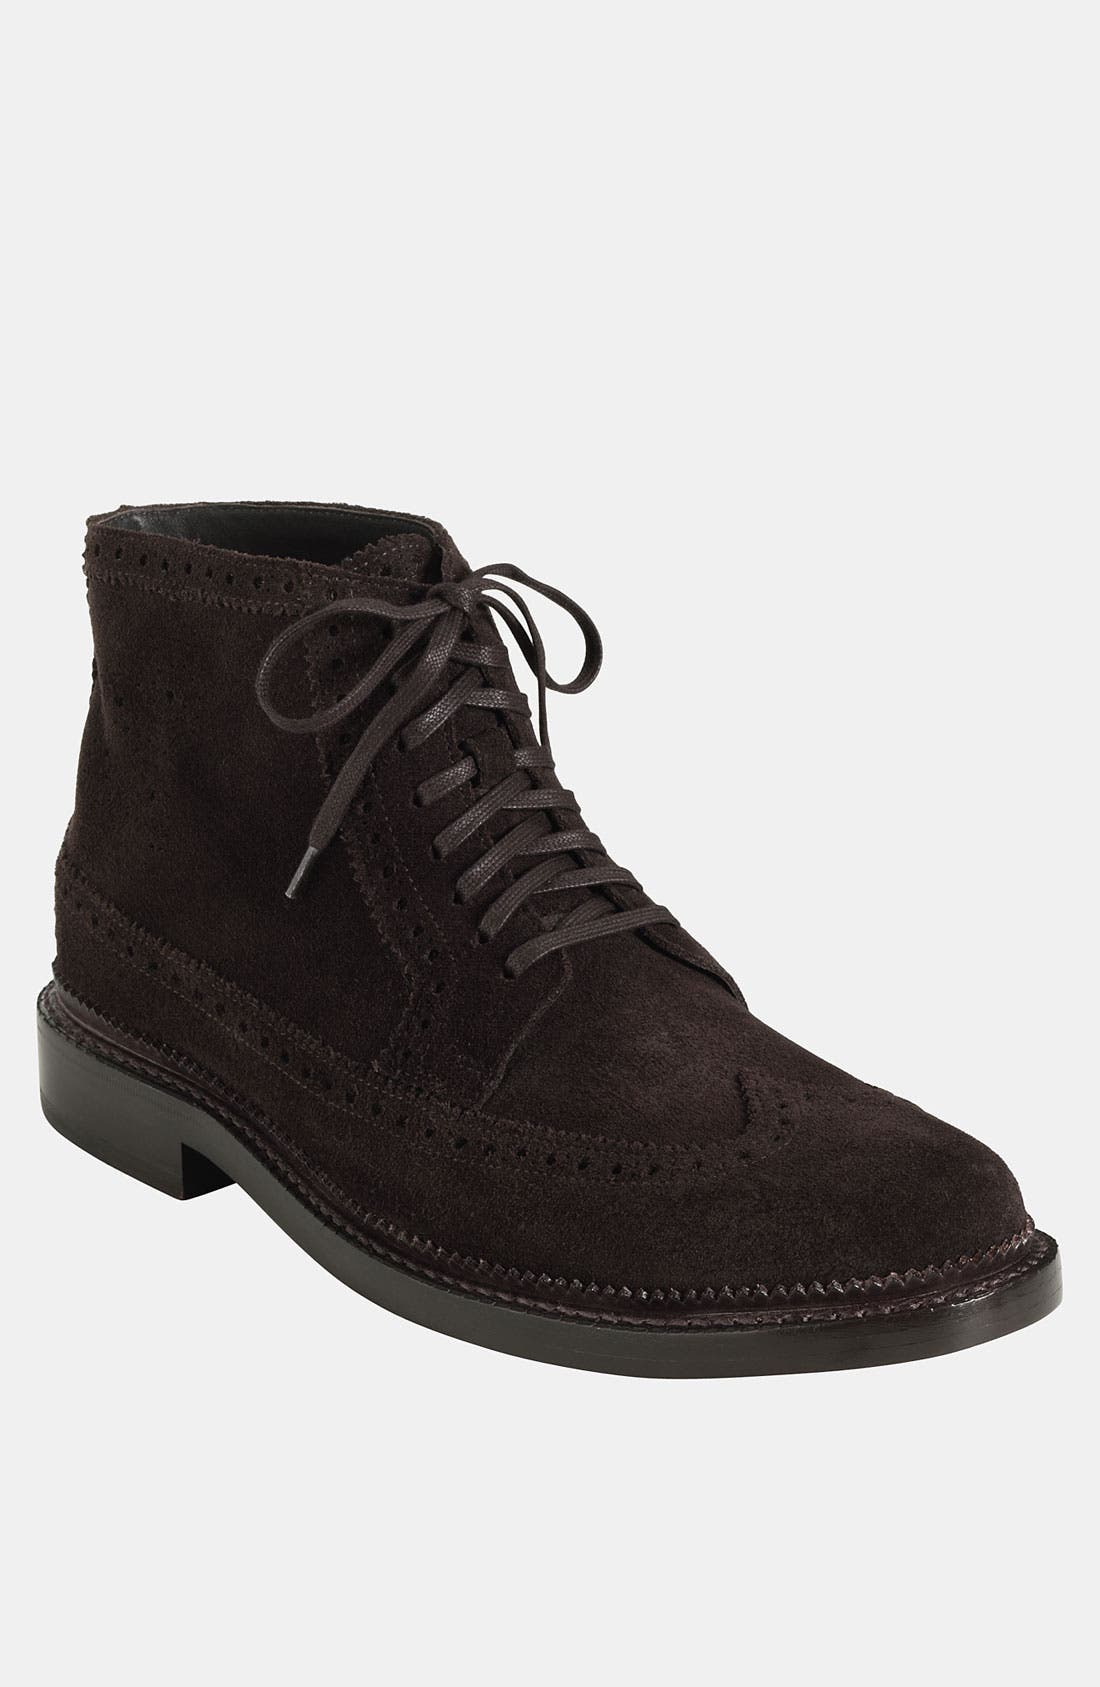 Alternate Image 1 Selected - Cole Haan 'Air Jayhawker' Longwing Boot